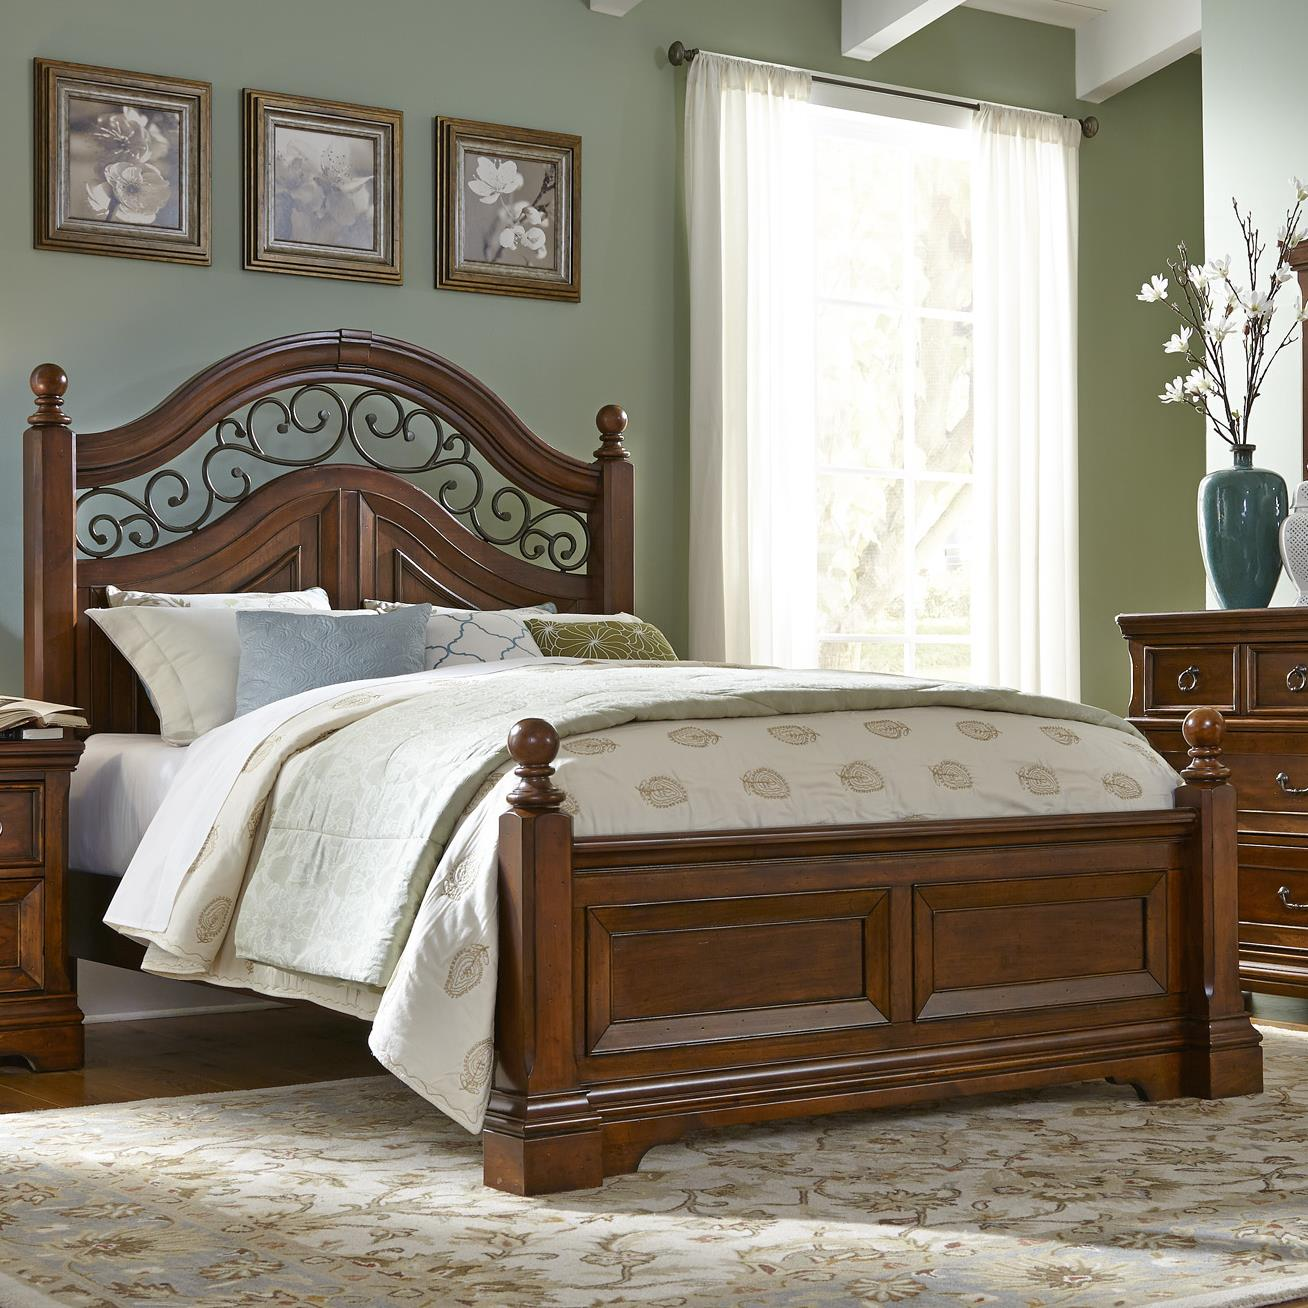 Liberty Furniture Laurelwood Queen Poster Bed - Item Number: 547-BR01+BR02+BR72